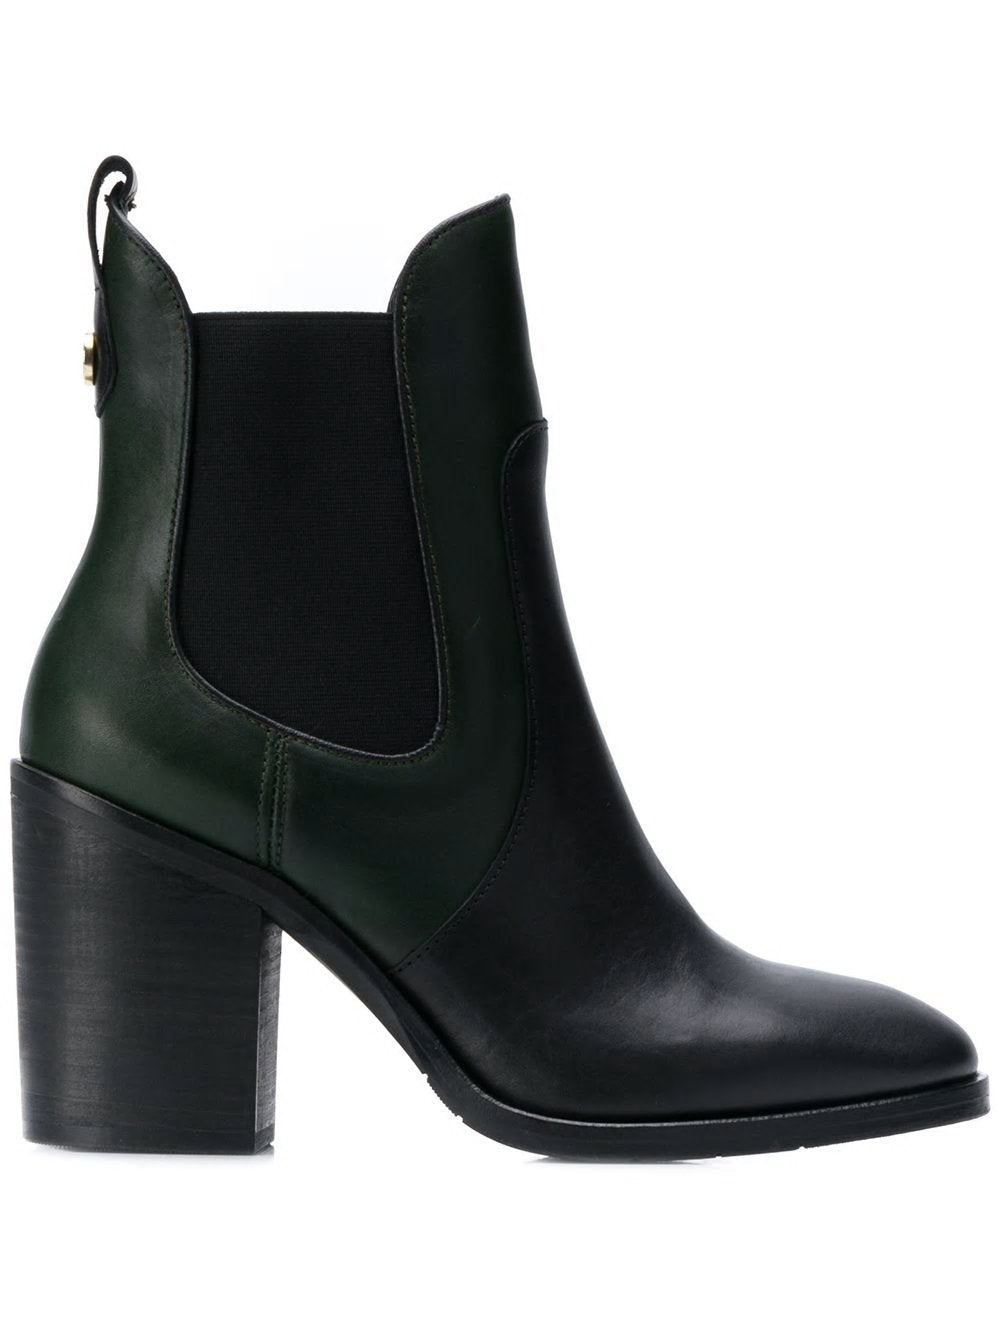 Tommy Hilfiger Womens Color Block Chelsea Booties FW0FW04495-LBK | Vilbury London